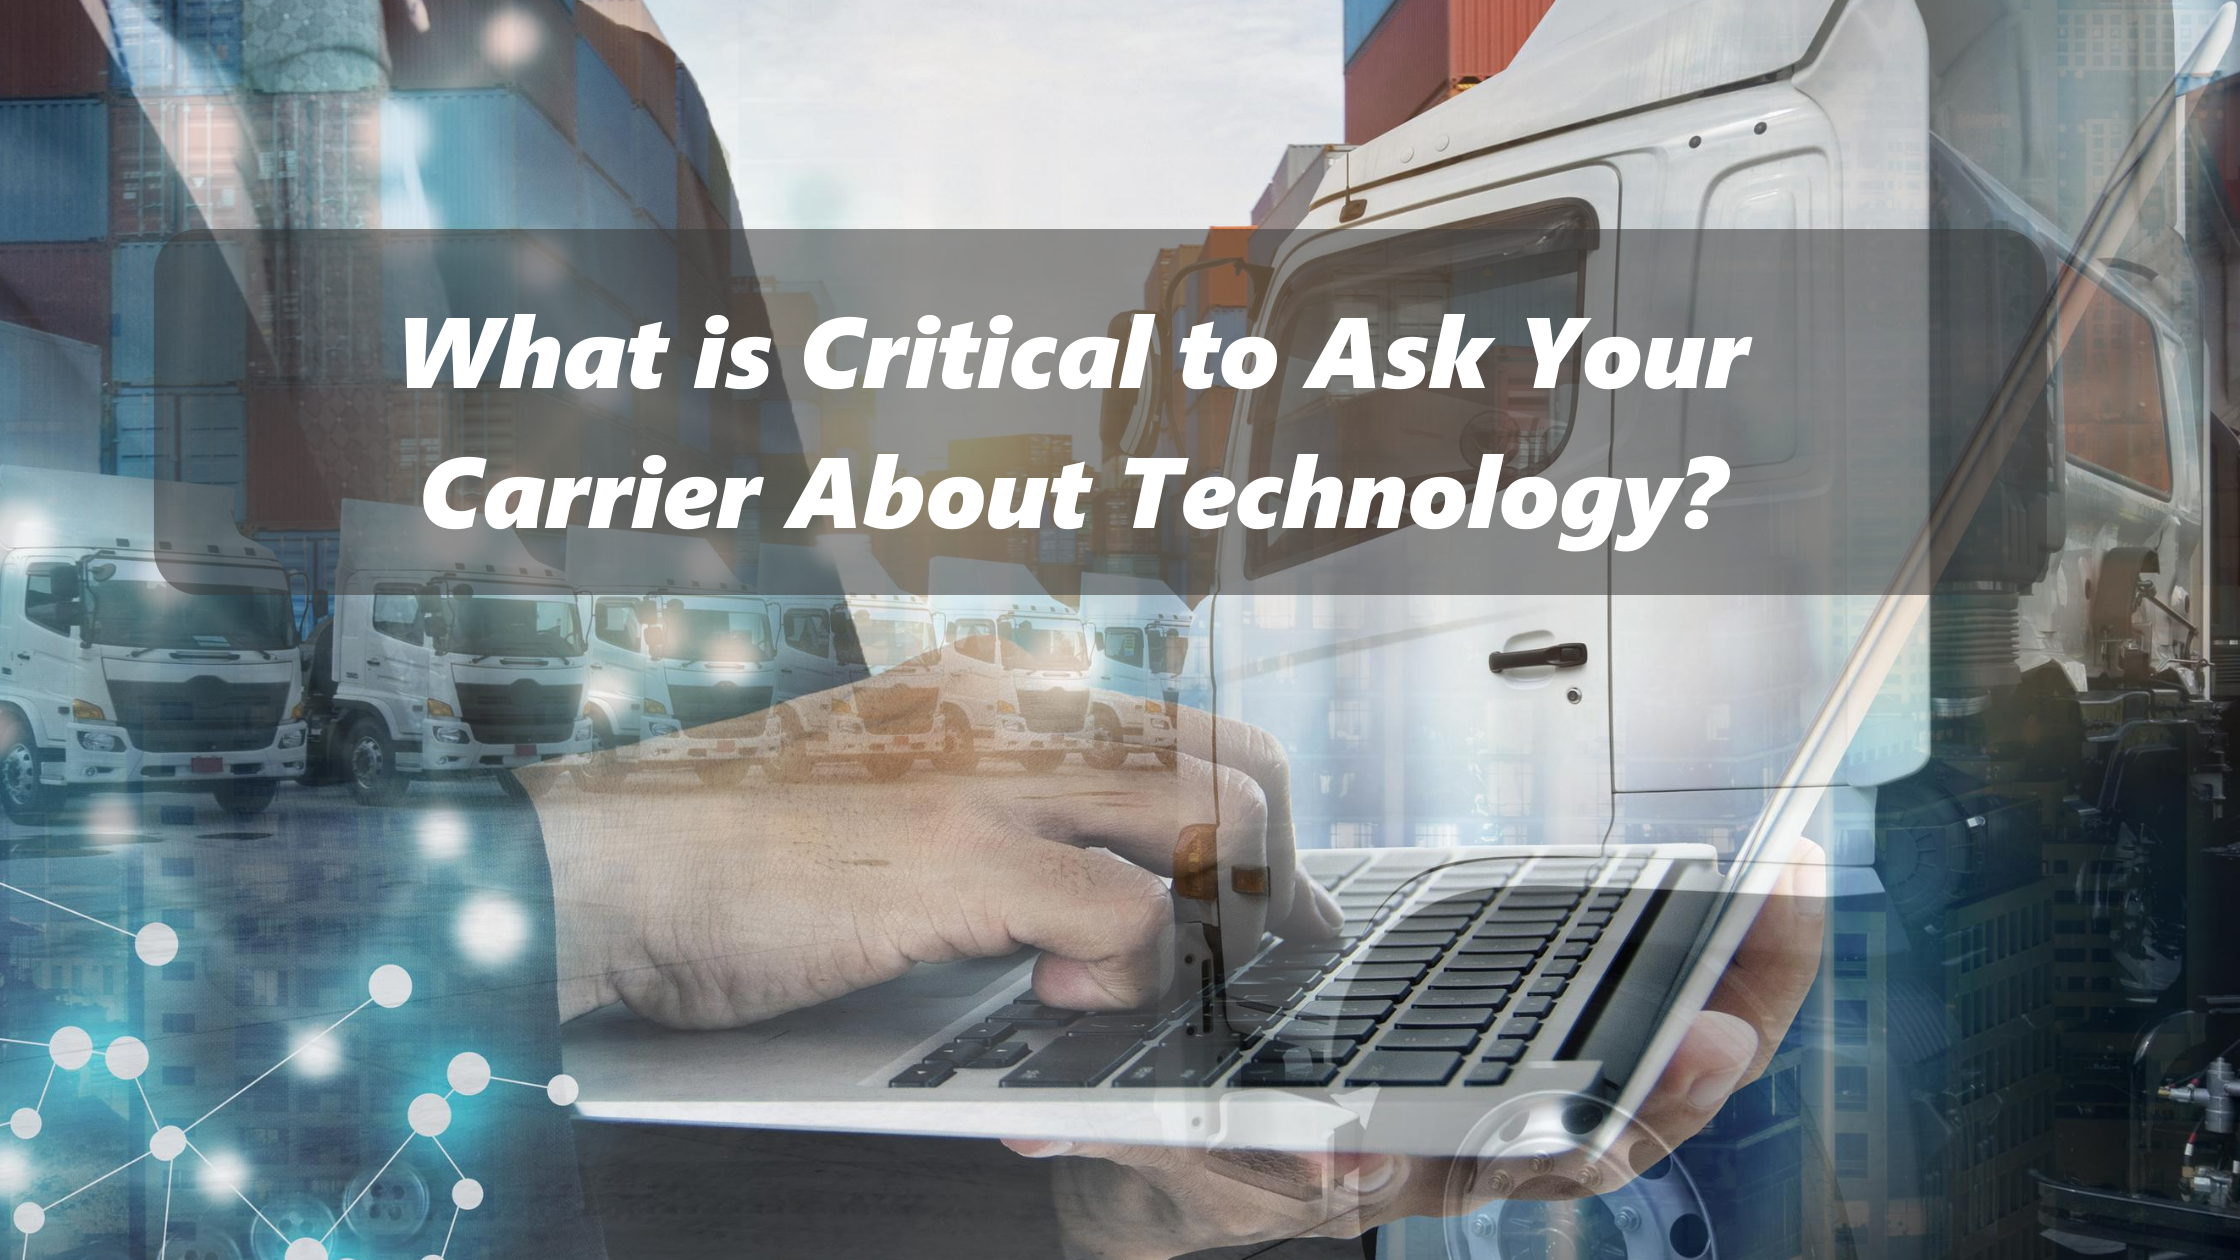 what-is-critical-to-ask-your-carrier-about-technology-hands-with-laptop-over-images- of-trucks